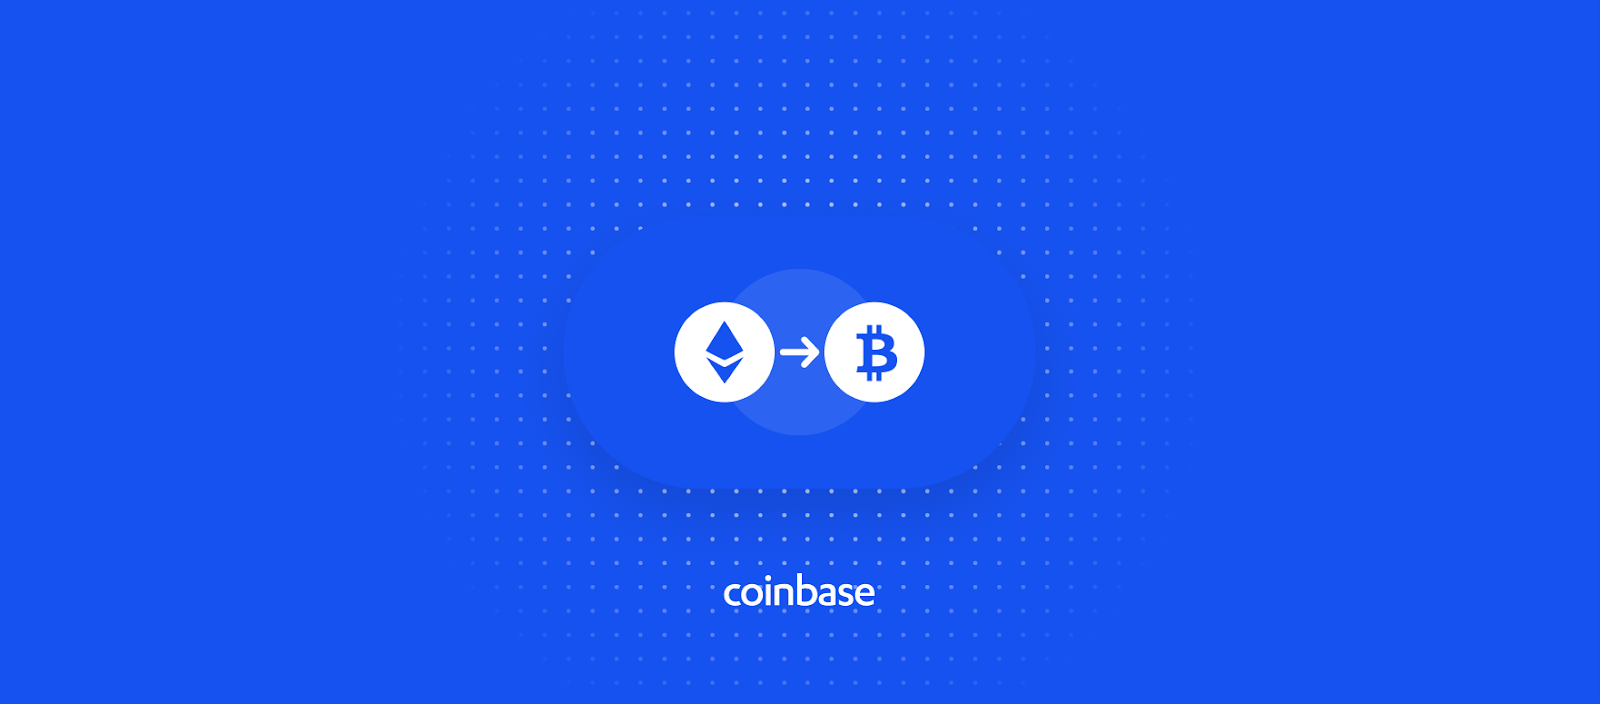 Day 8 of 12 Days of Coinbase: Direct crypto conversions on Coinbase